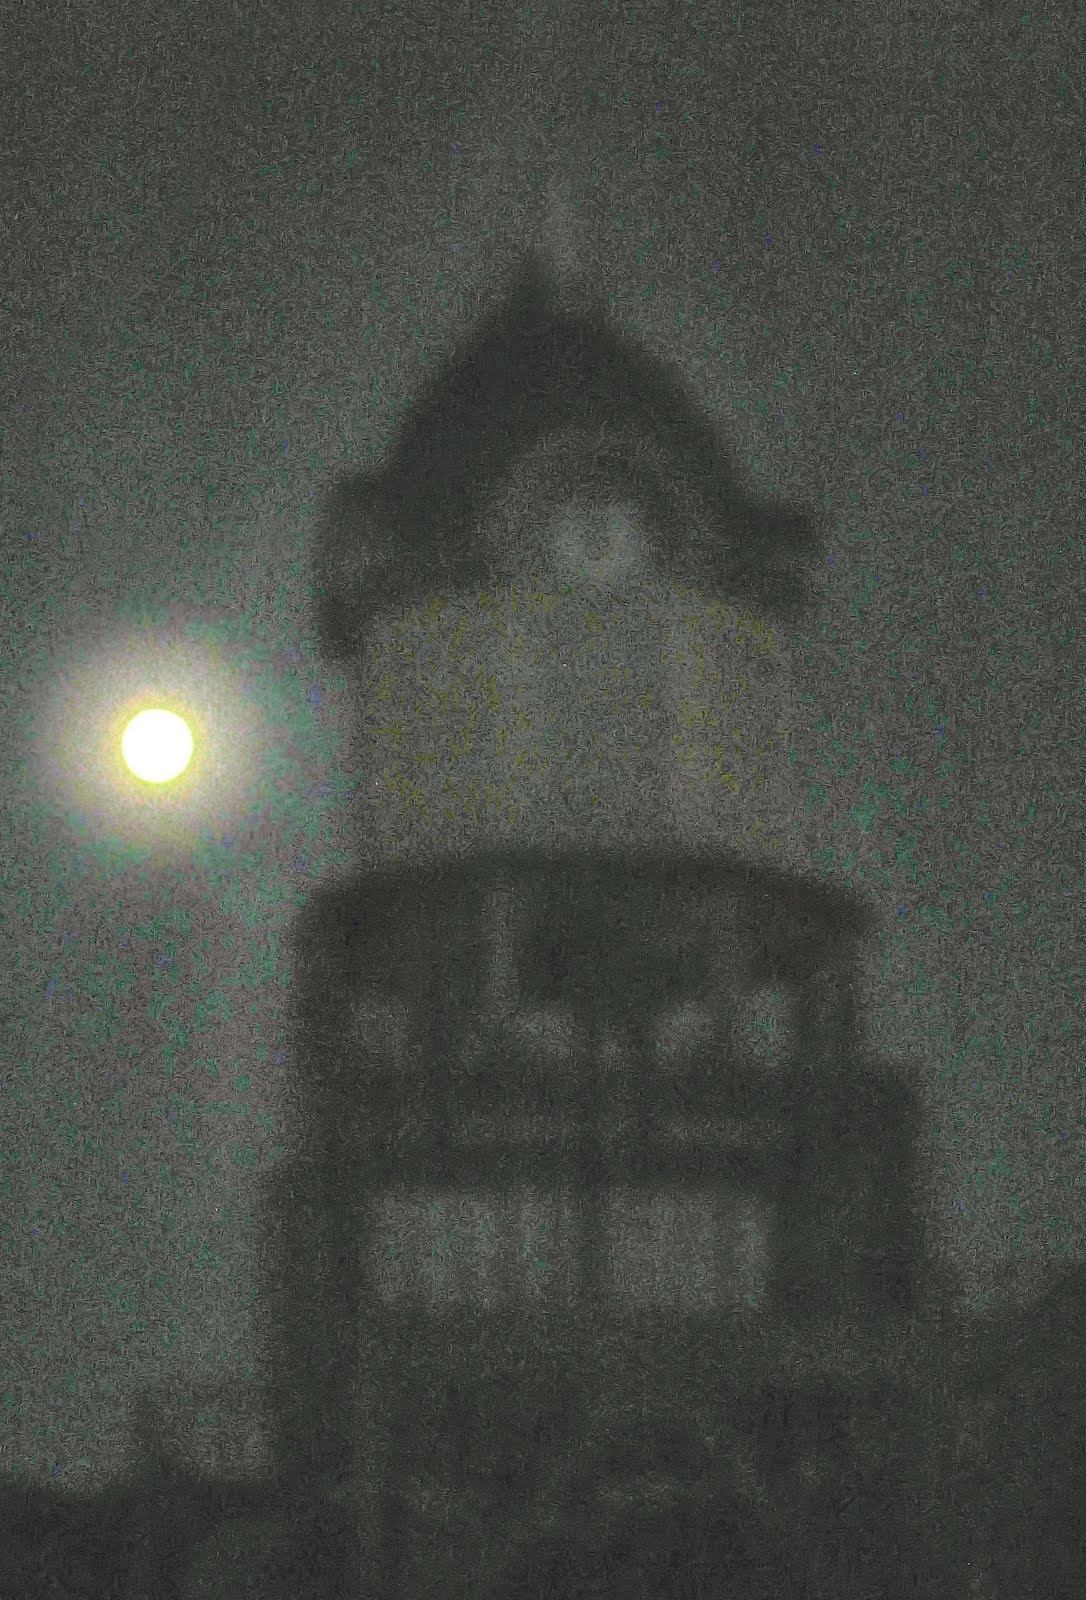 [New+Courthouse+Clock+Tower+In+Moonlight2+-+Sept-2-2009.jpg]